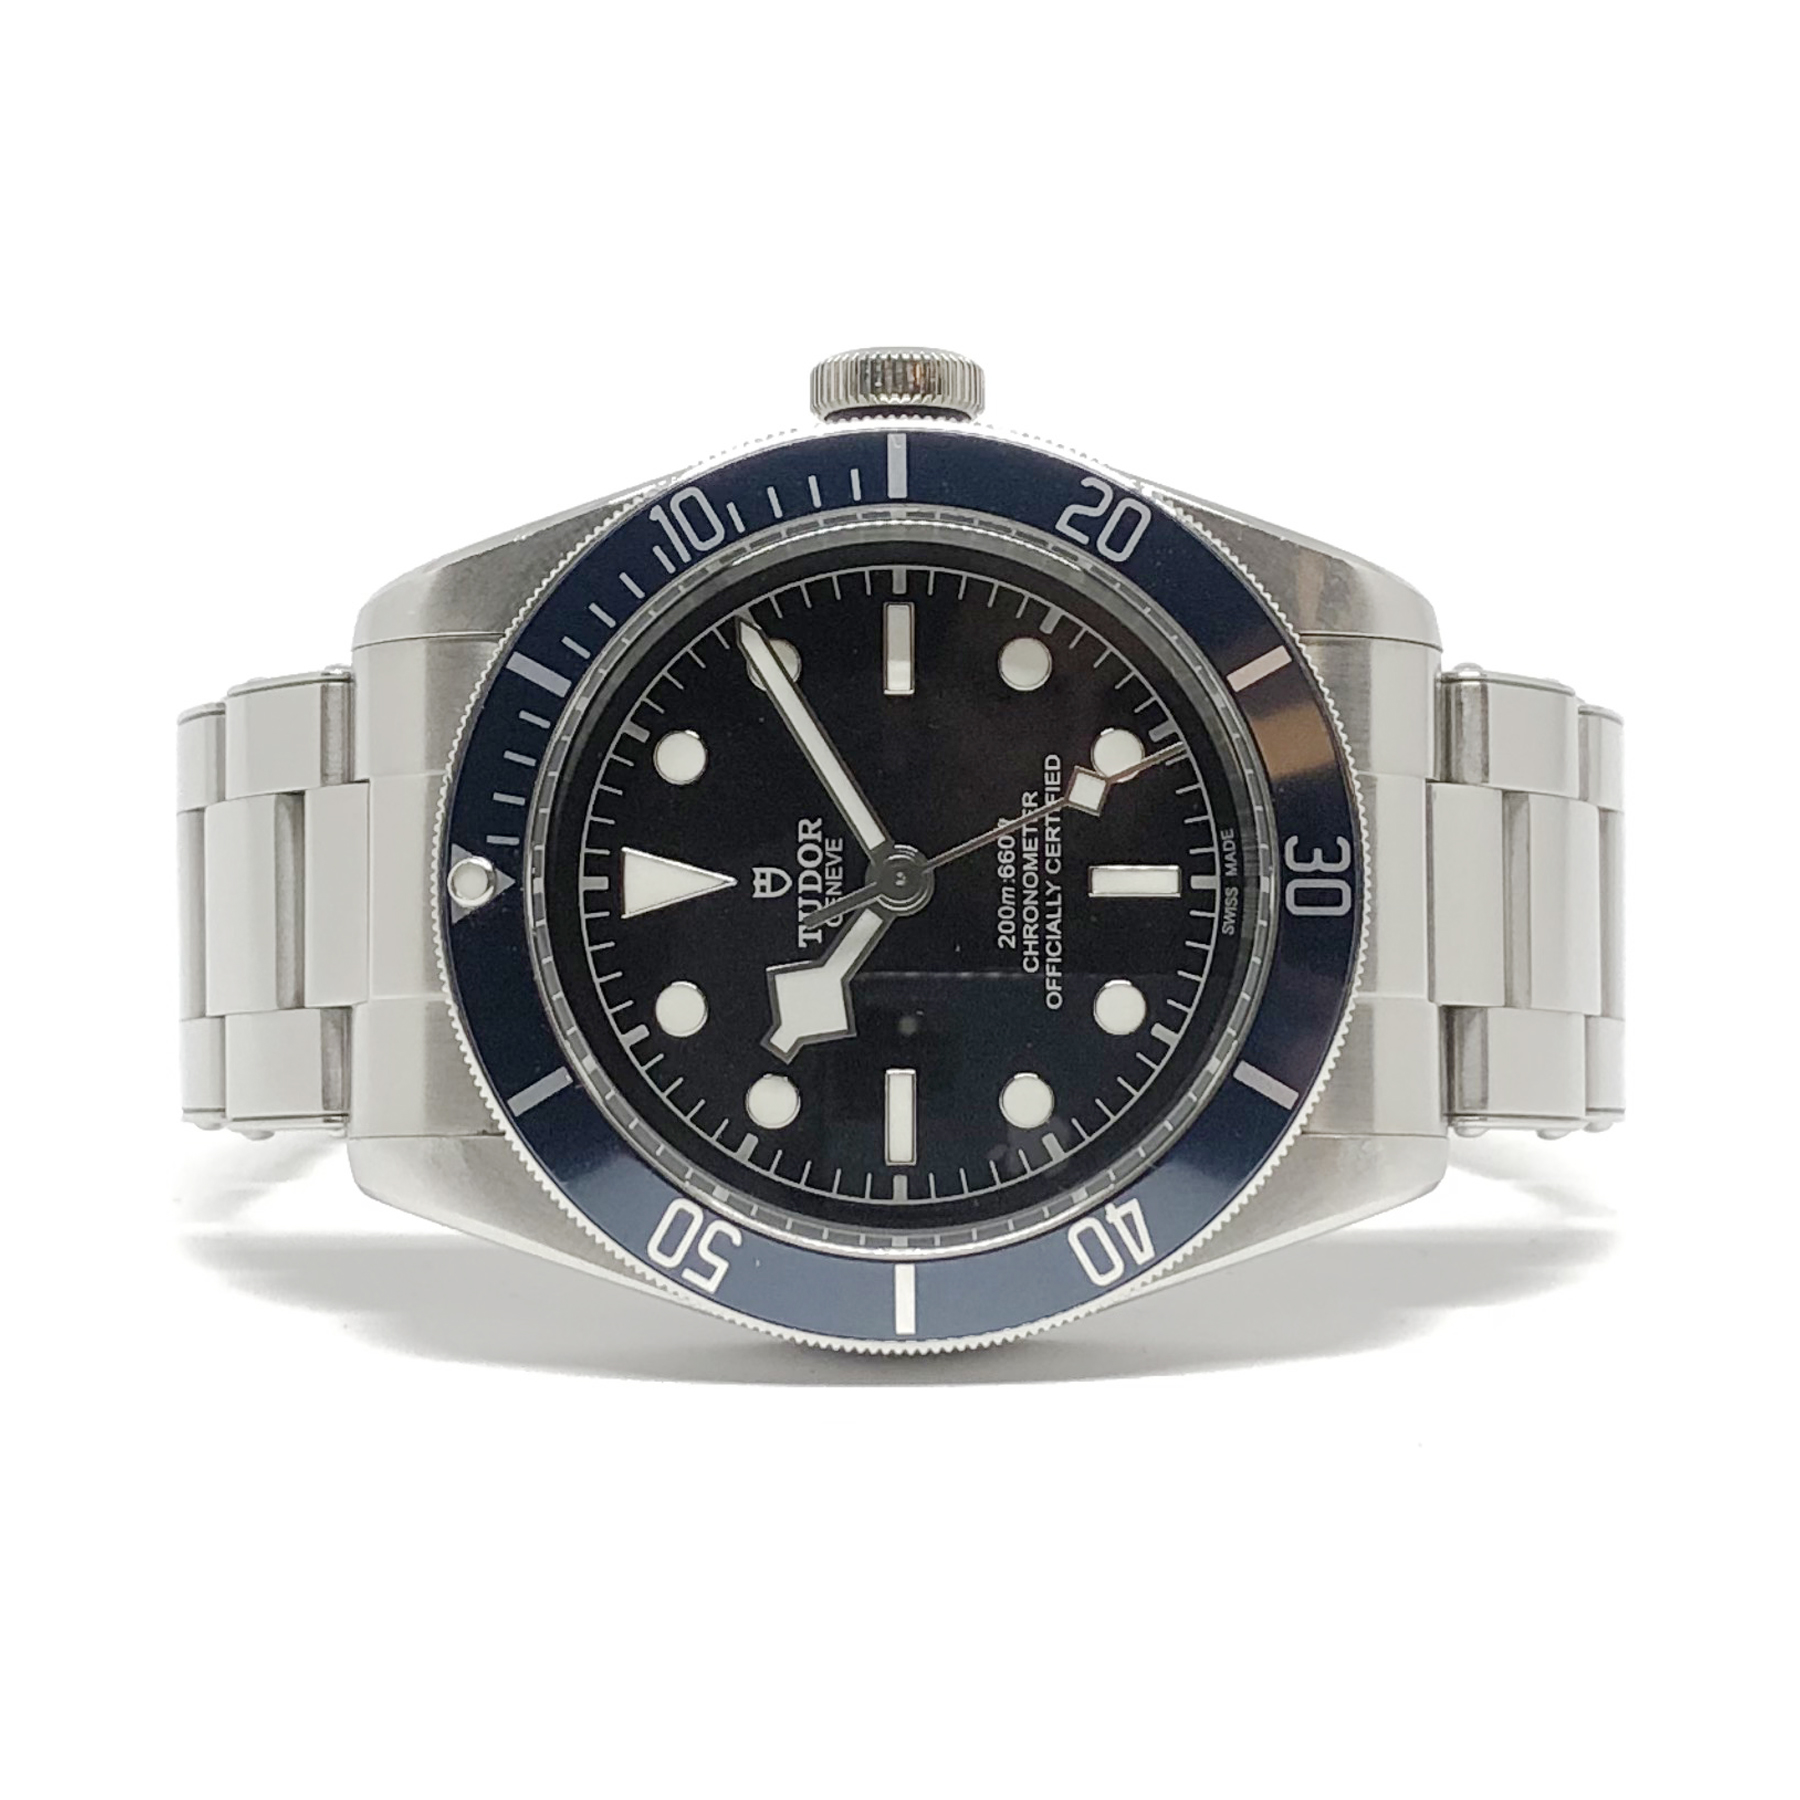 Tudor Black Bay Blue, ref. 79230B Kr. 18.000,-